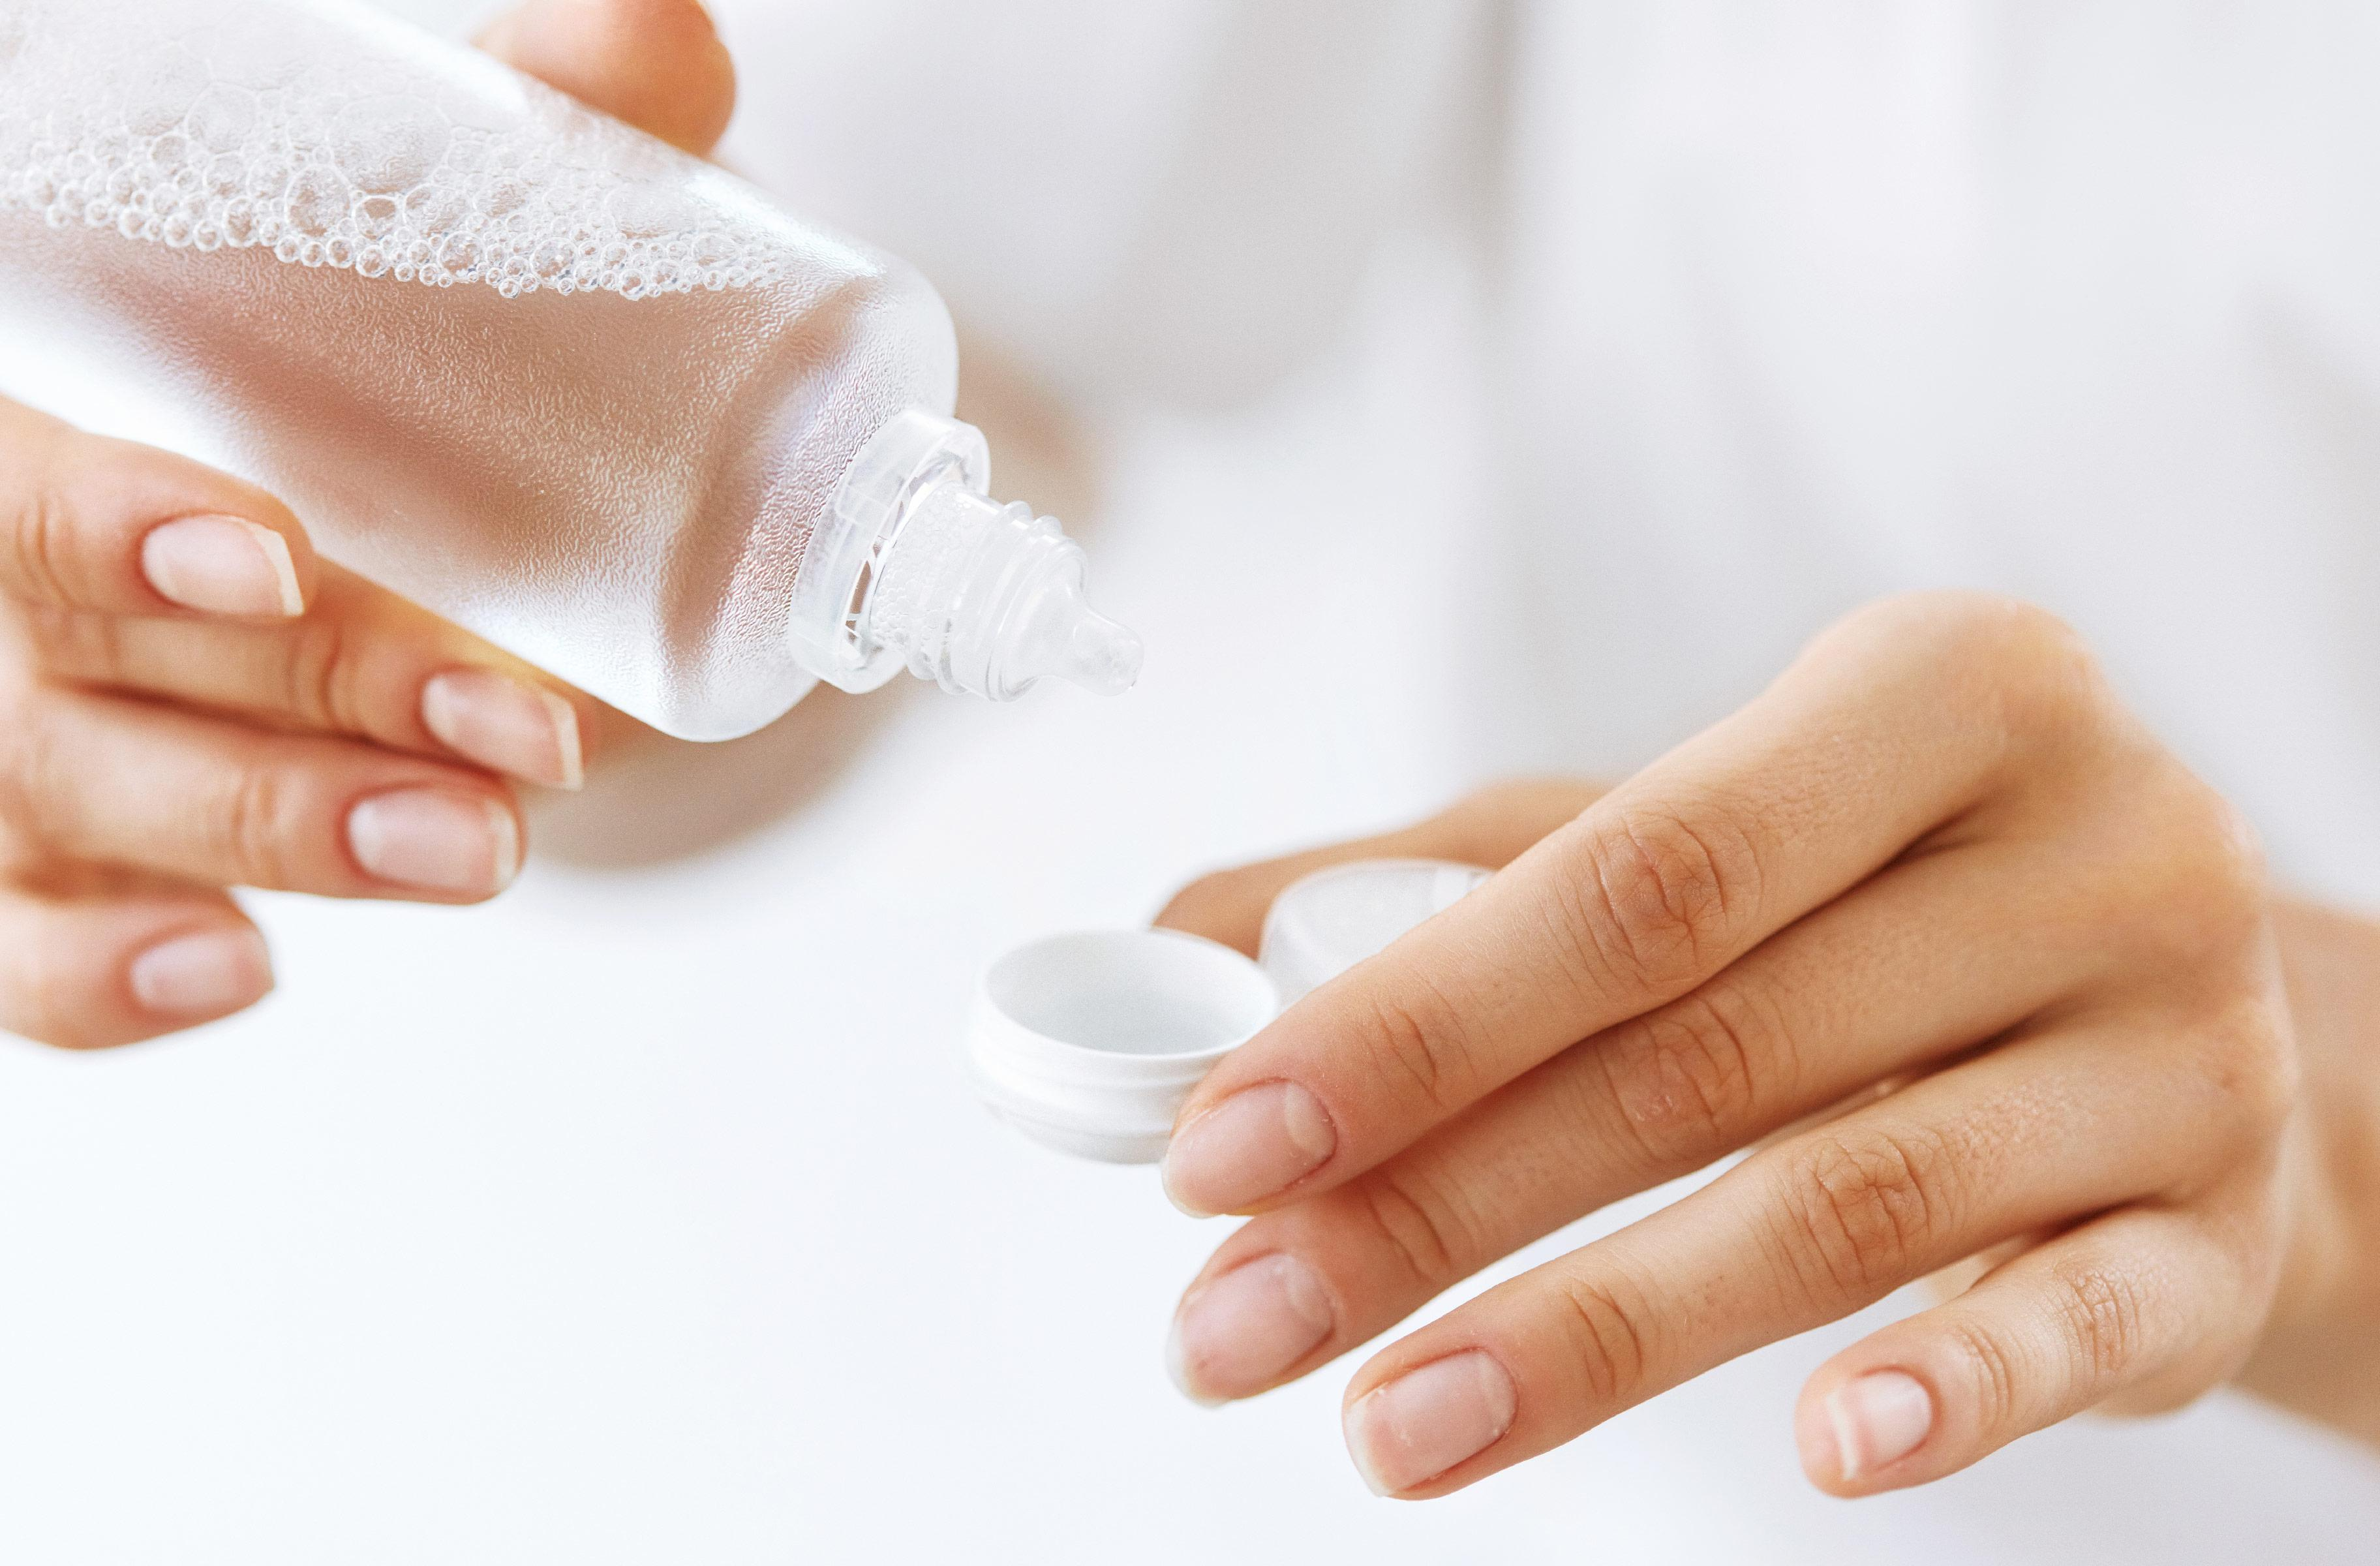 Contact lens solution being poured from a bottle to a case by a woman's hand